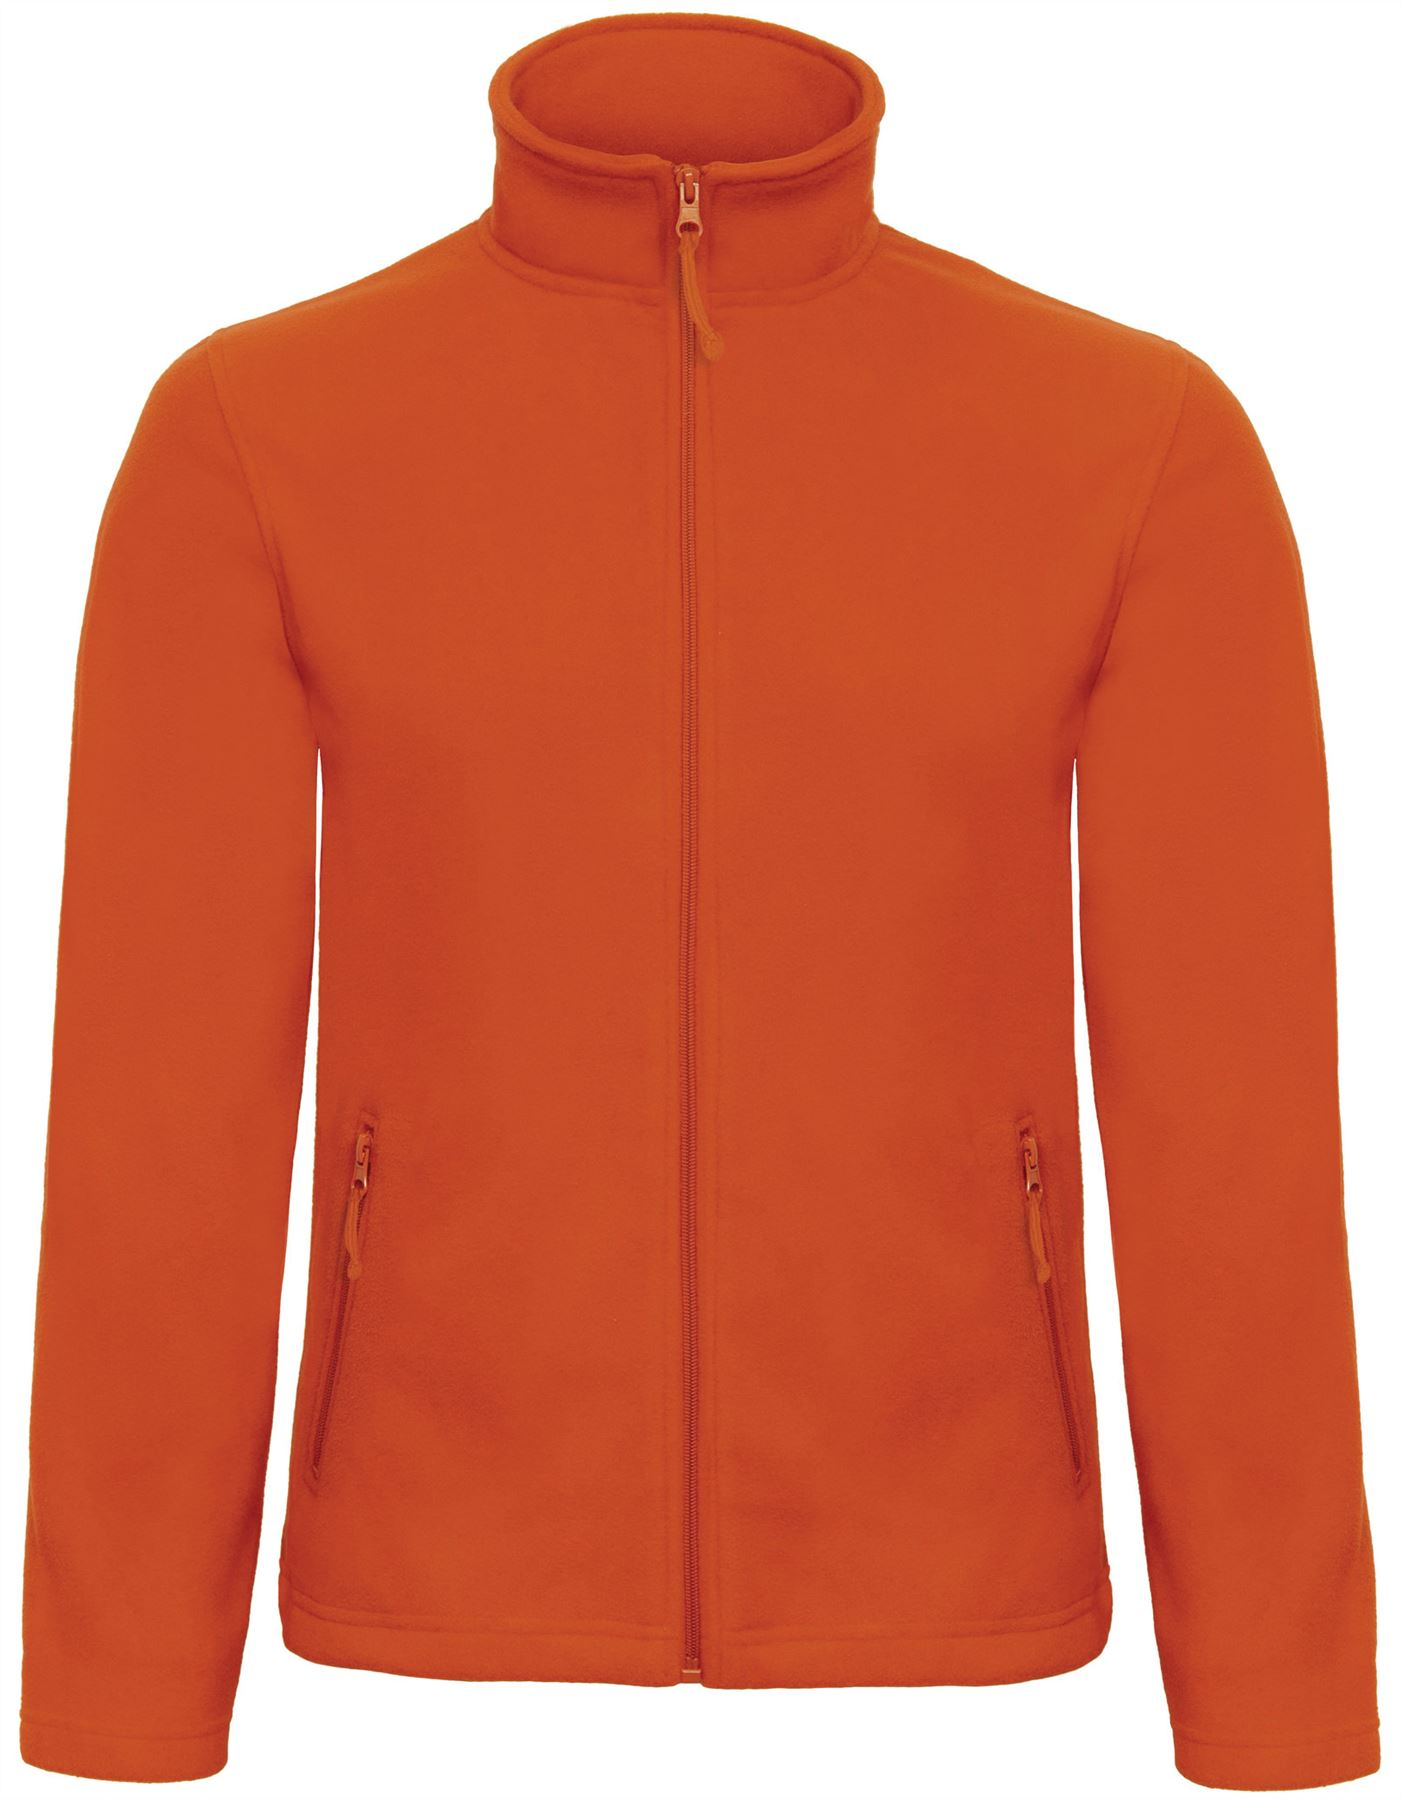 B-amp-c-collection-homme-ID-501-casual-veste-en-polaire-FUI50-full-zip-100-polyester